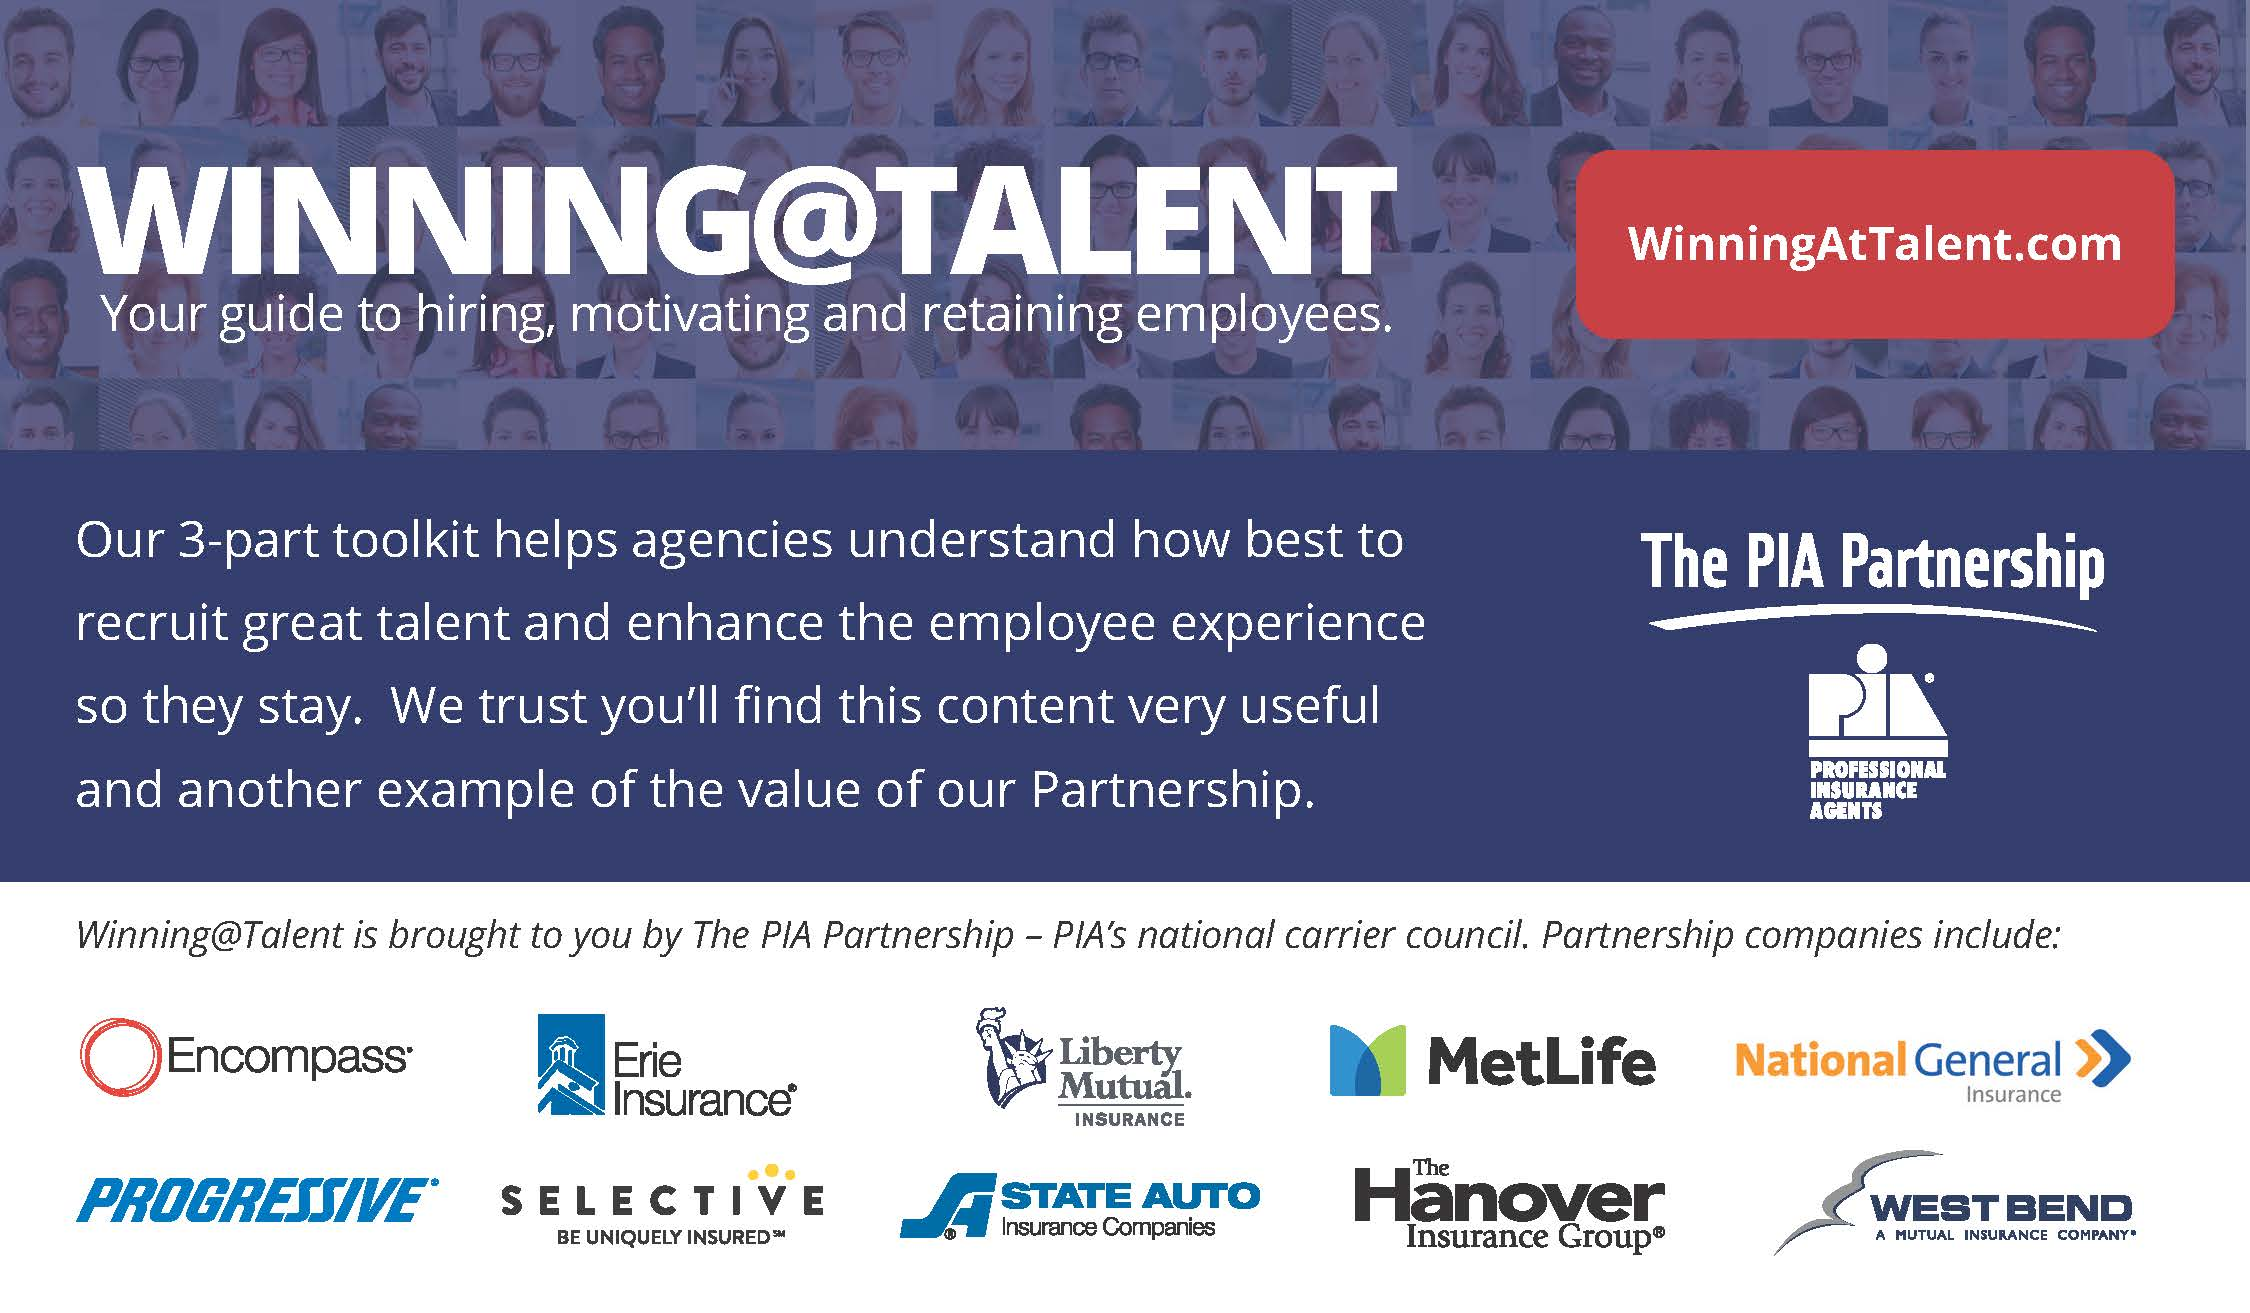 Winning at Talent-half page ad_DIGITAL VERSION_rev 3-10-20.jpg